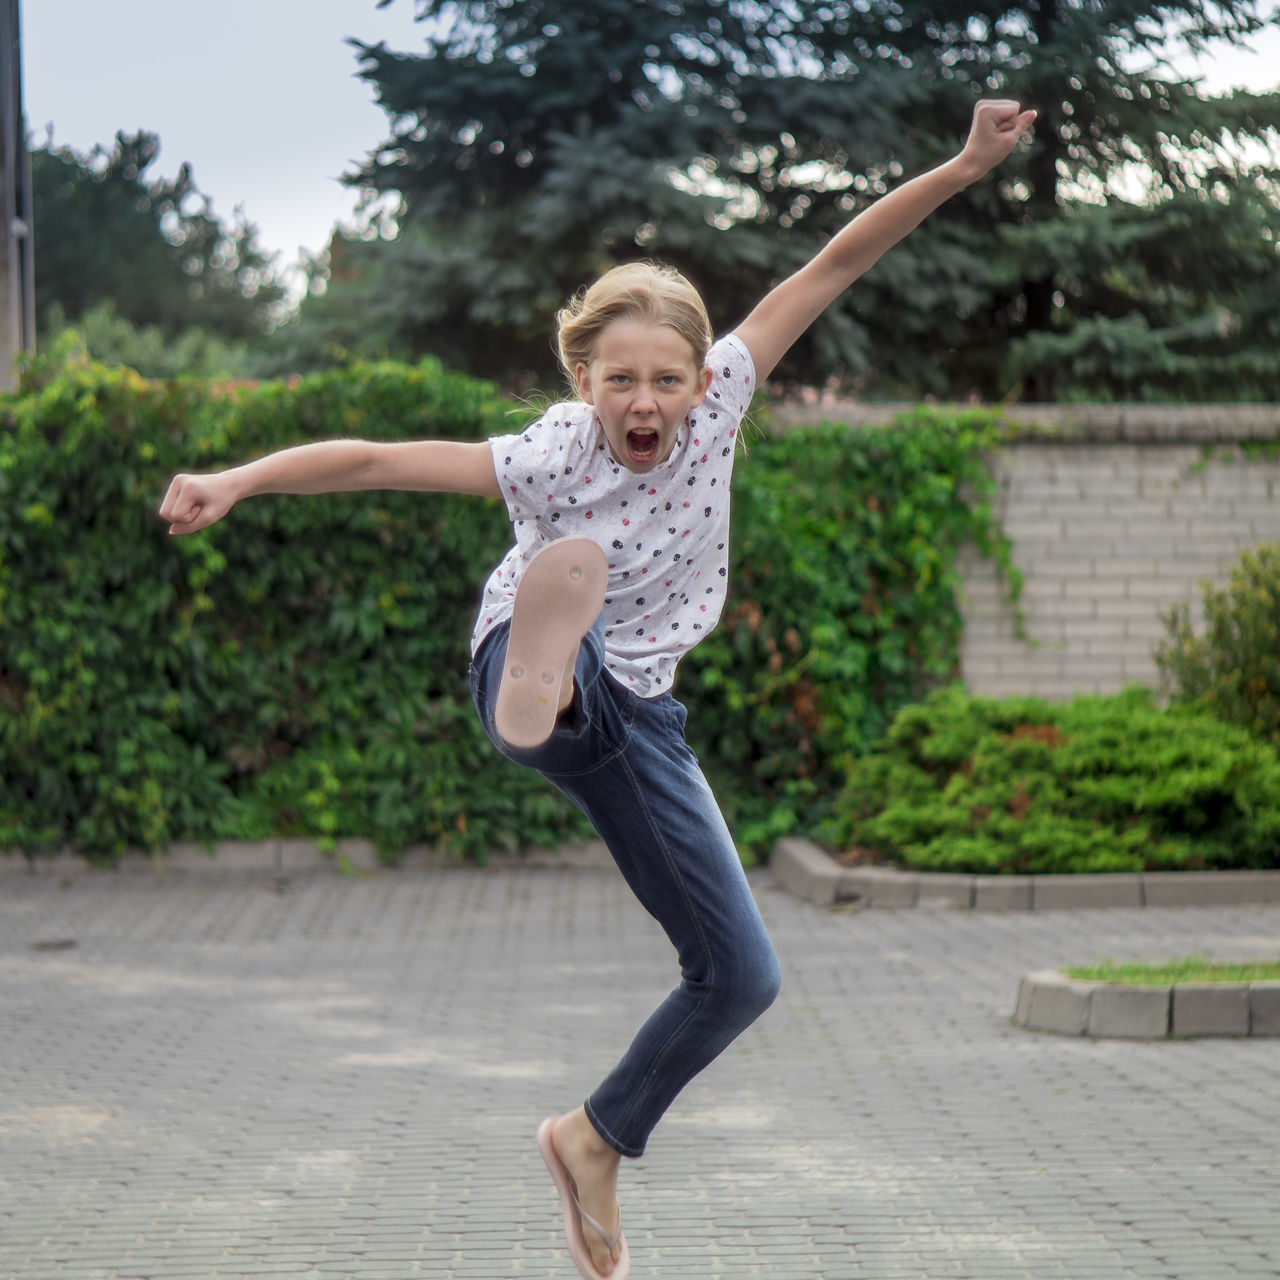 11 years girl shows kungfu kick with leg in the jump , along with a shout . Very realistic and public parking Blond Day Expression Fun Jeans Jump Karate Kick Kid Kungfu  Long Hair Outdoors Panda Parking Person Playing Public Screeming Summer T-shirt Teenager Young Young Women Neighborhood Map Out Of The Box Live For The Story